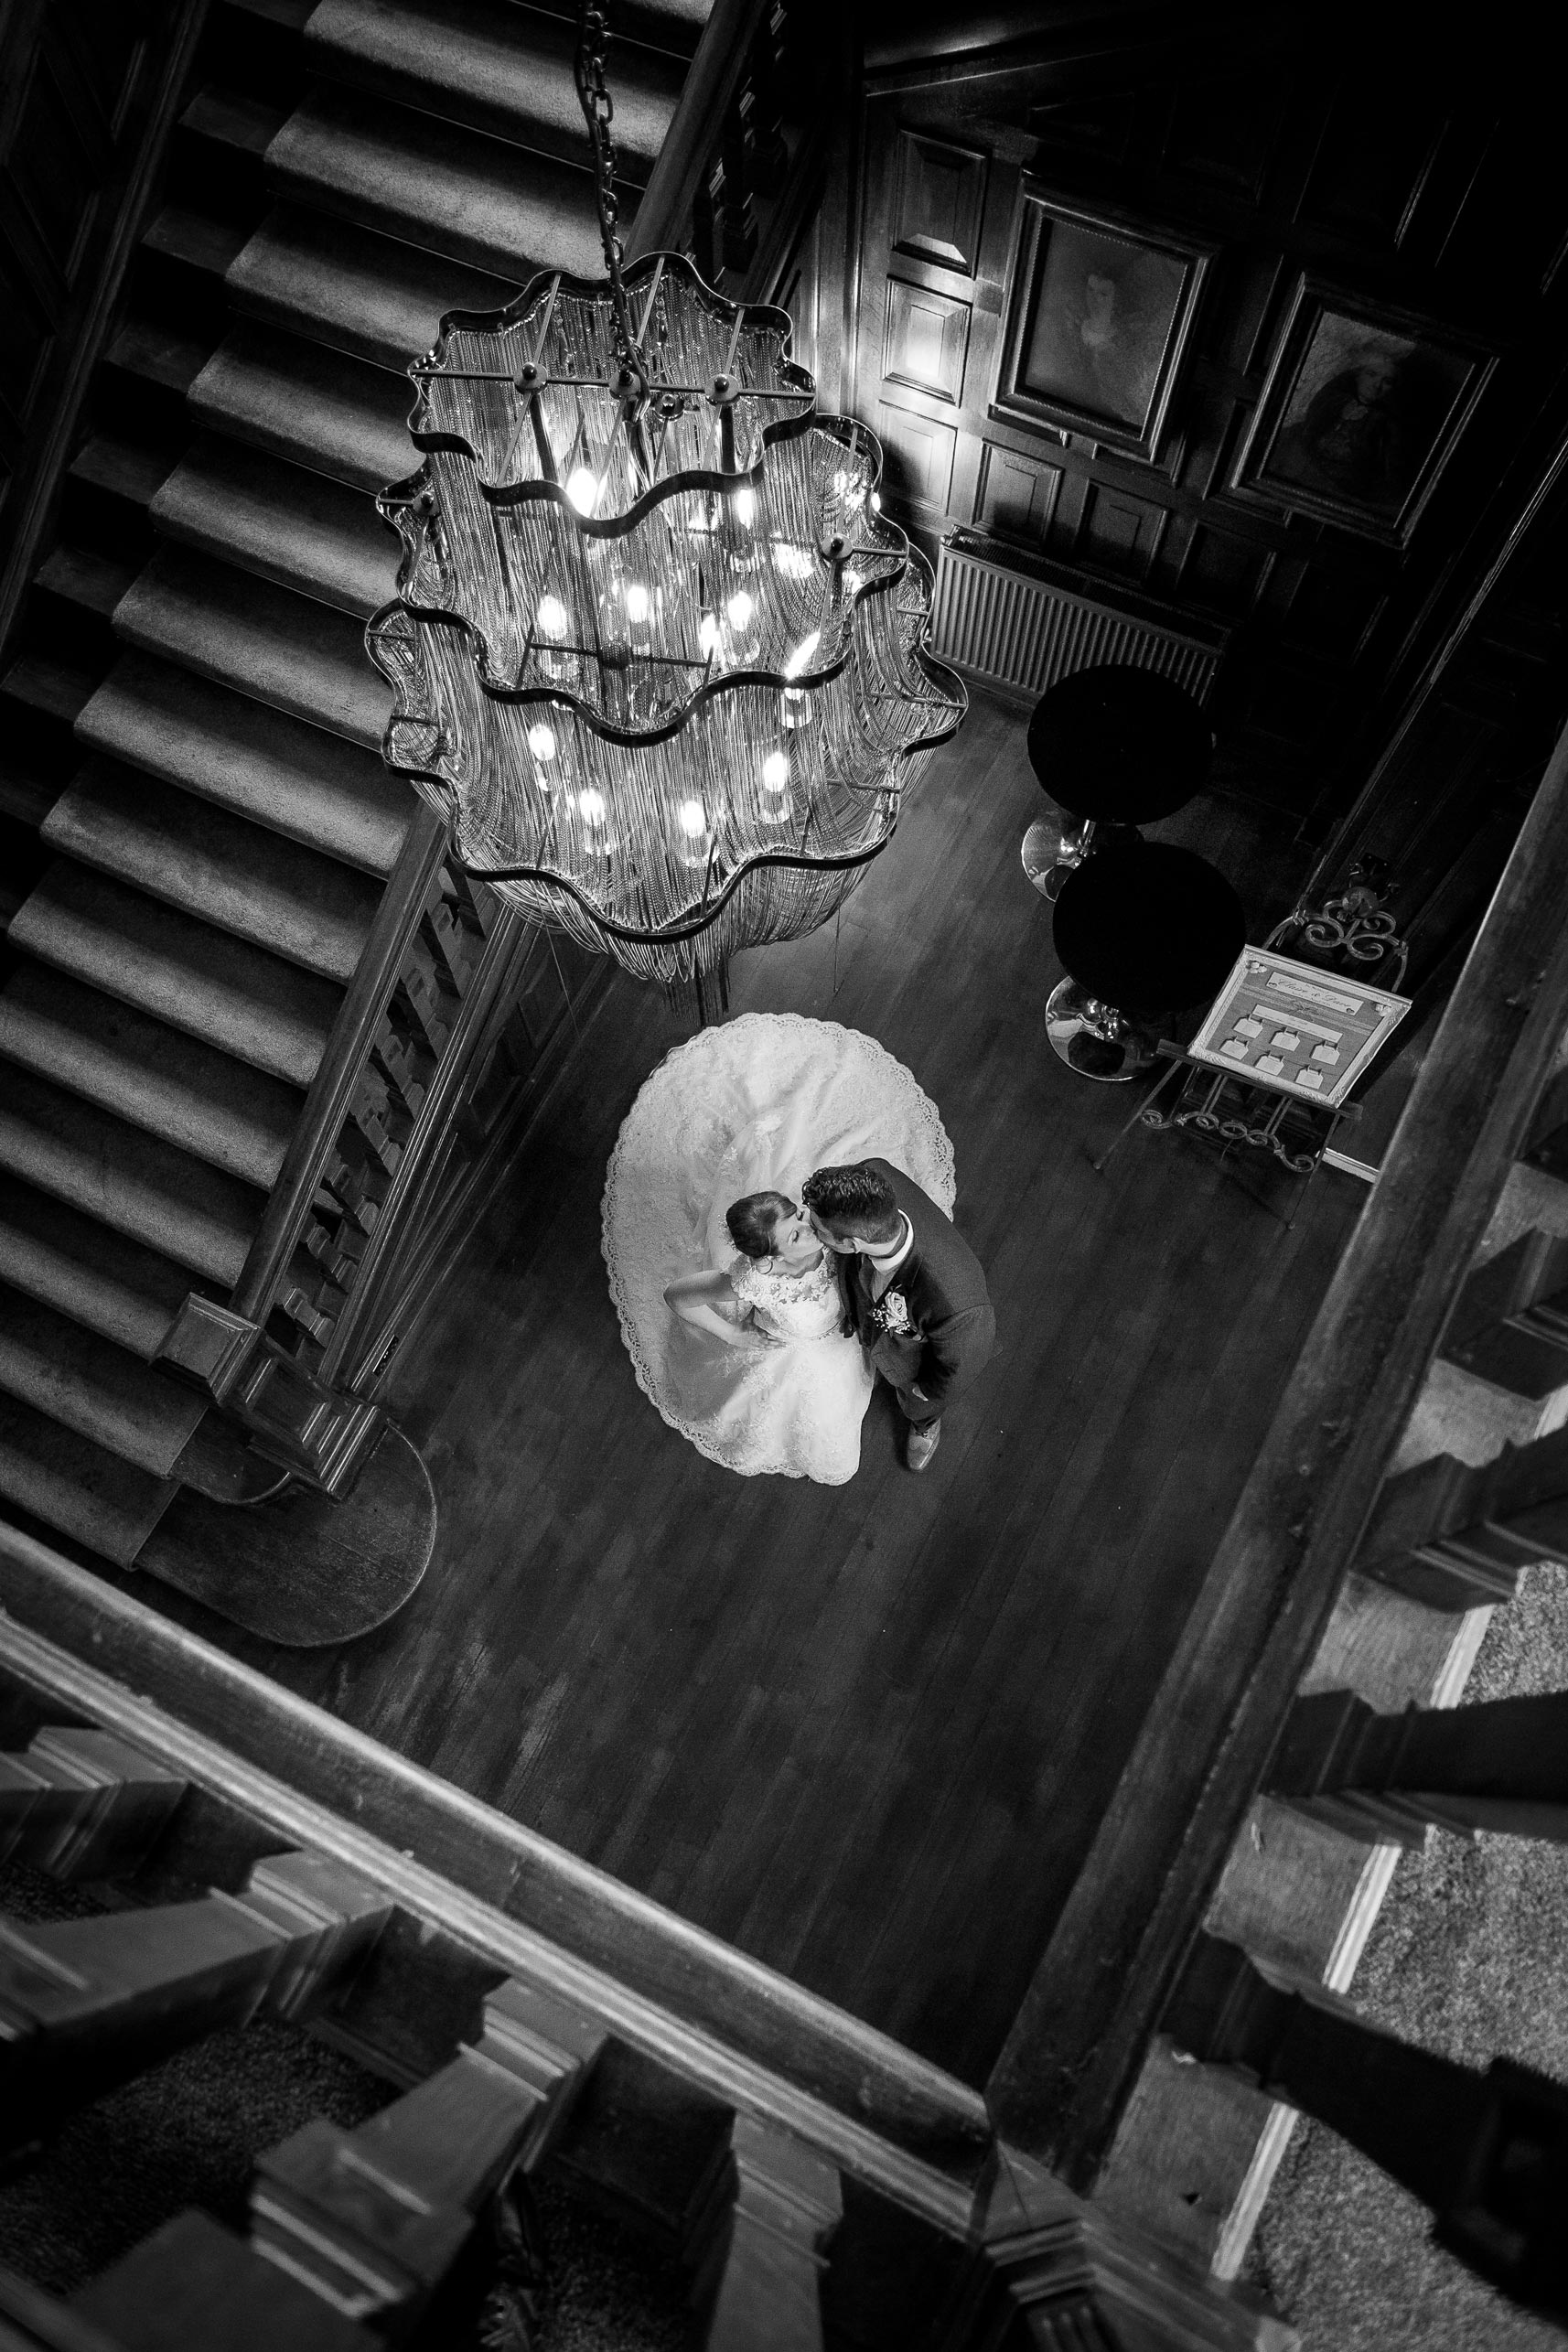 Wedding image of bride and groom standing near a staircase